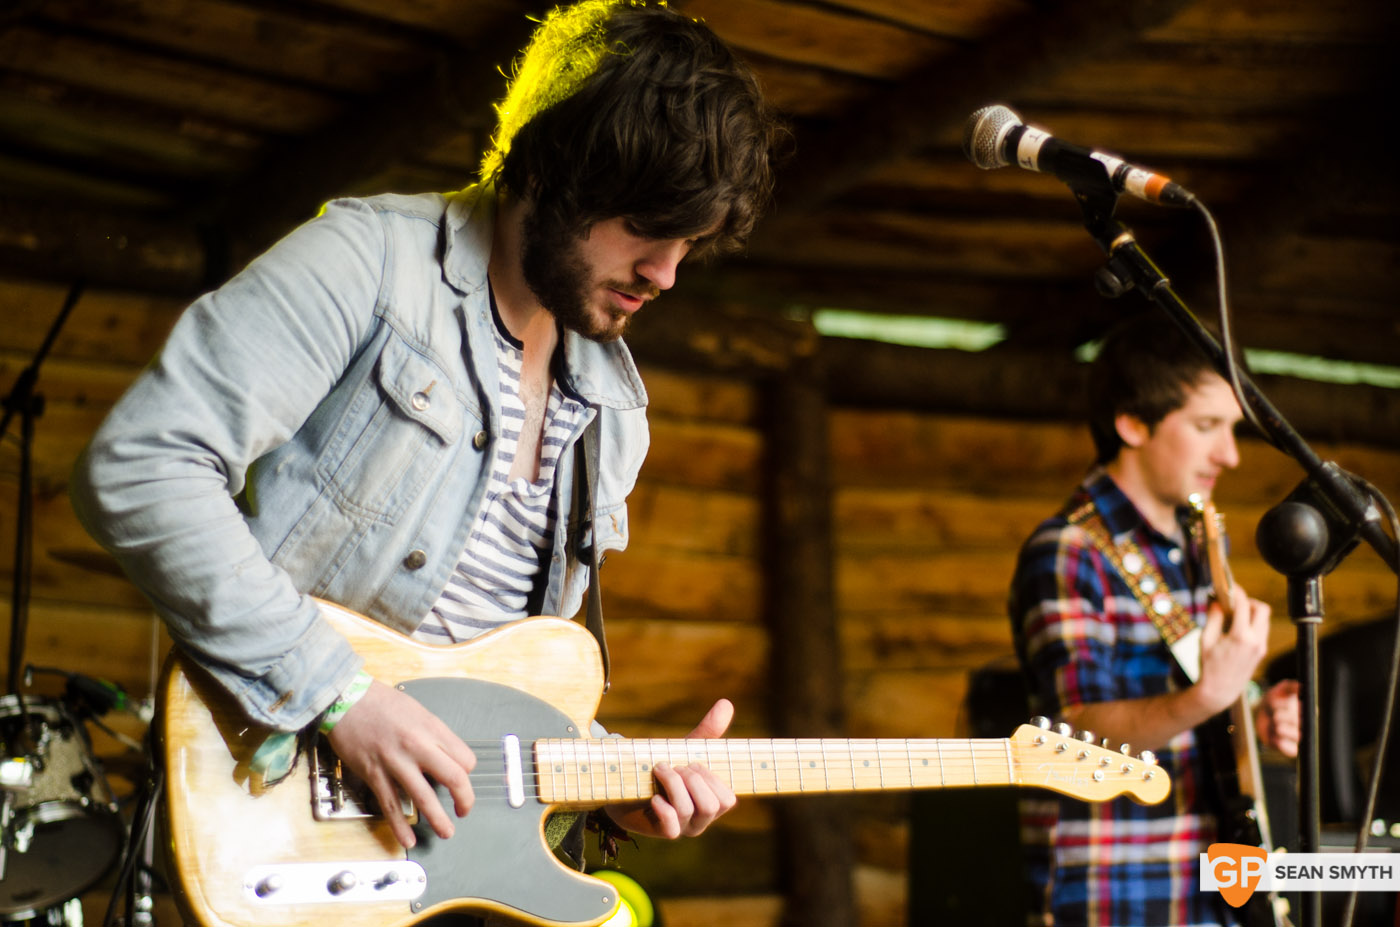 the-wood-burning-savages-sunday-at-vantastival-by-sean-smyth-1-5-14-26-of-49